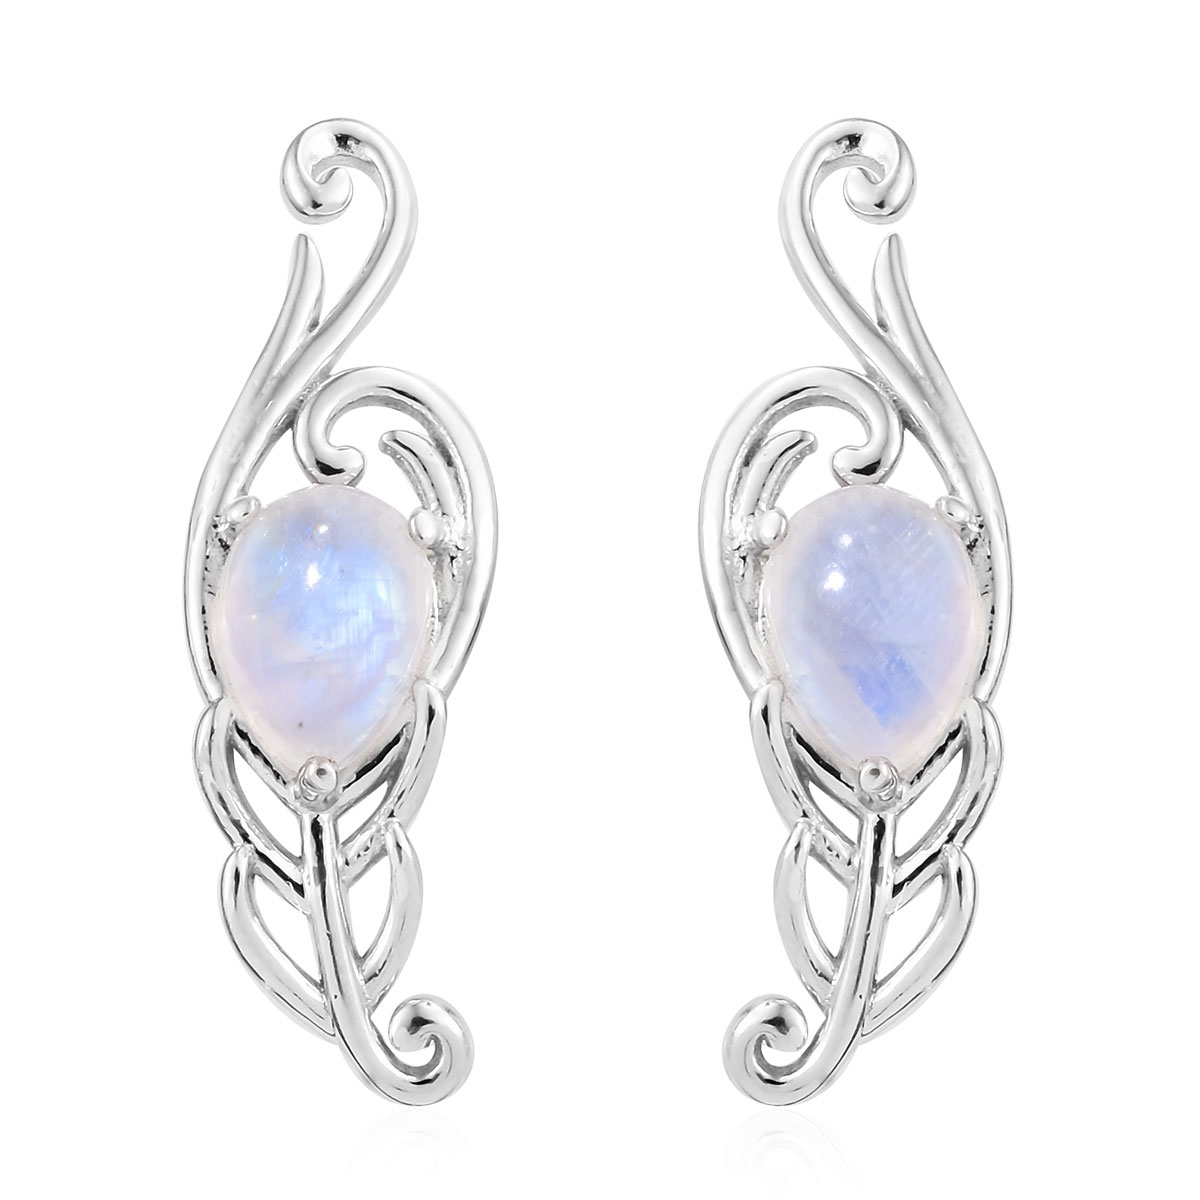 Rainbow Moonstone Earrings In Platinum Over Sterling Silver 3 12 Ctw